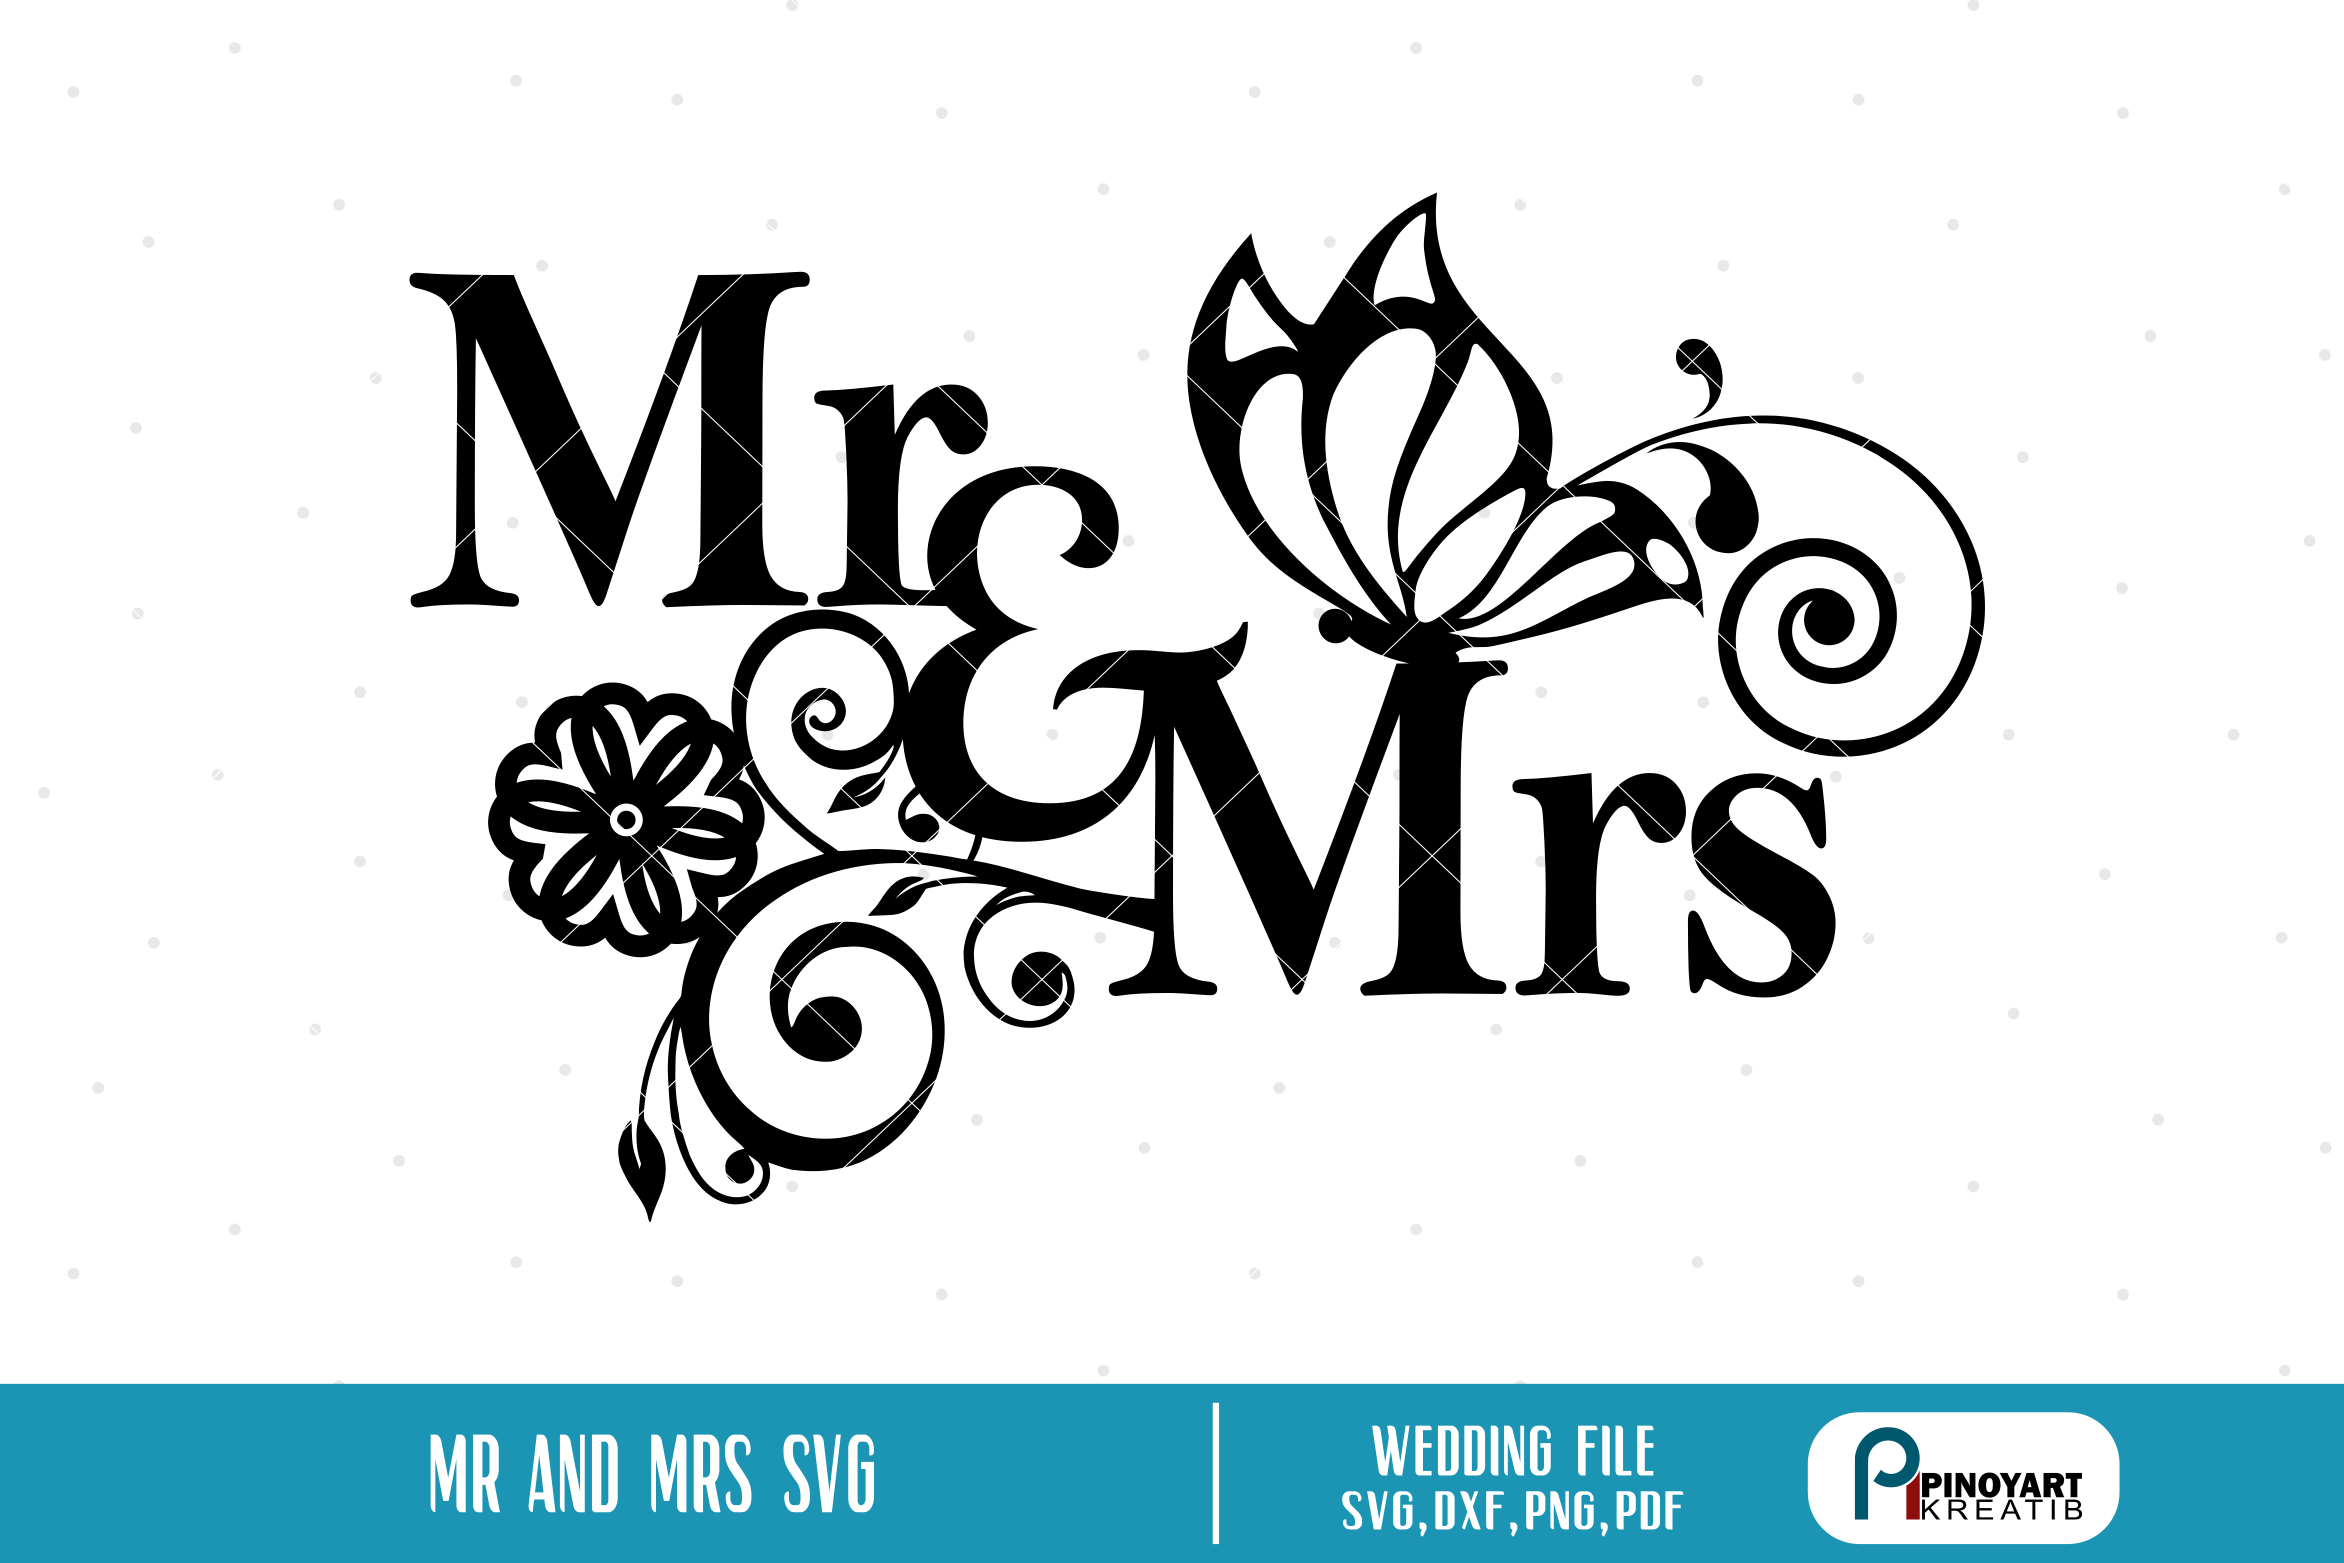 Mr and Mrs SVG, Mr and Mrs Svg File, Wedding Svg File,Vector.